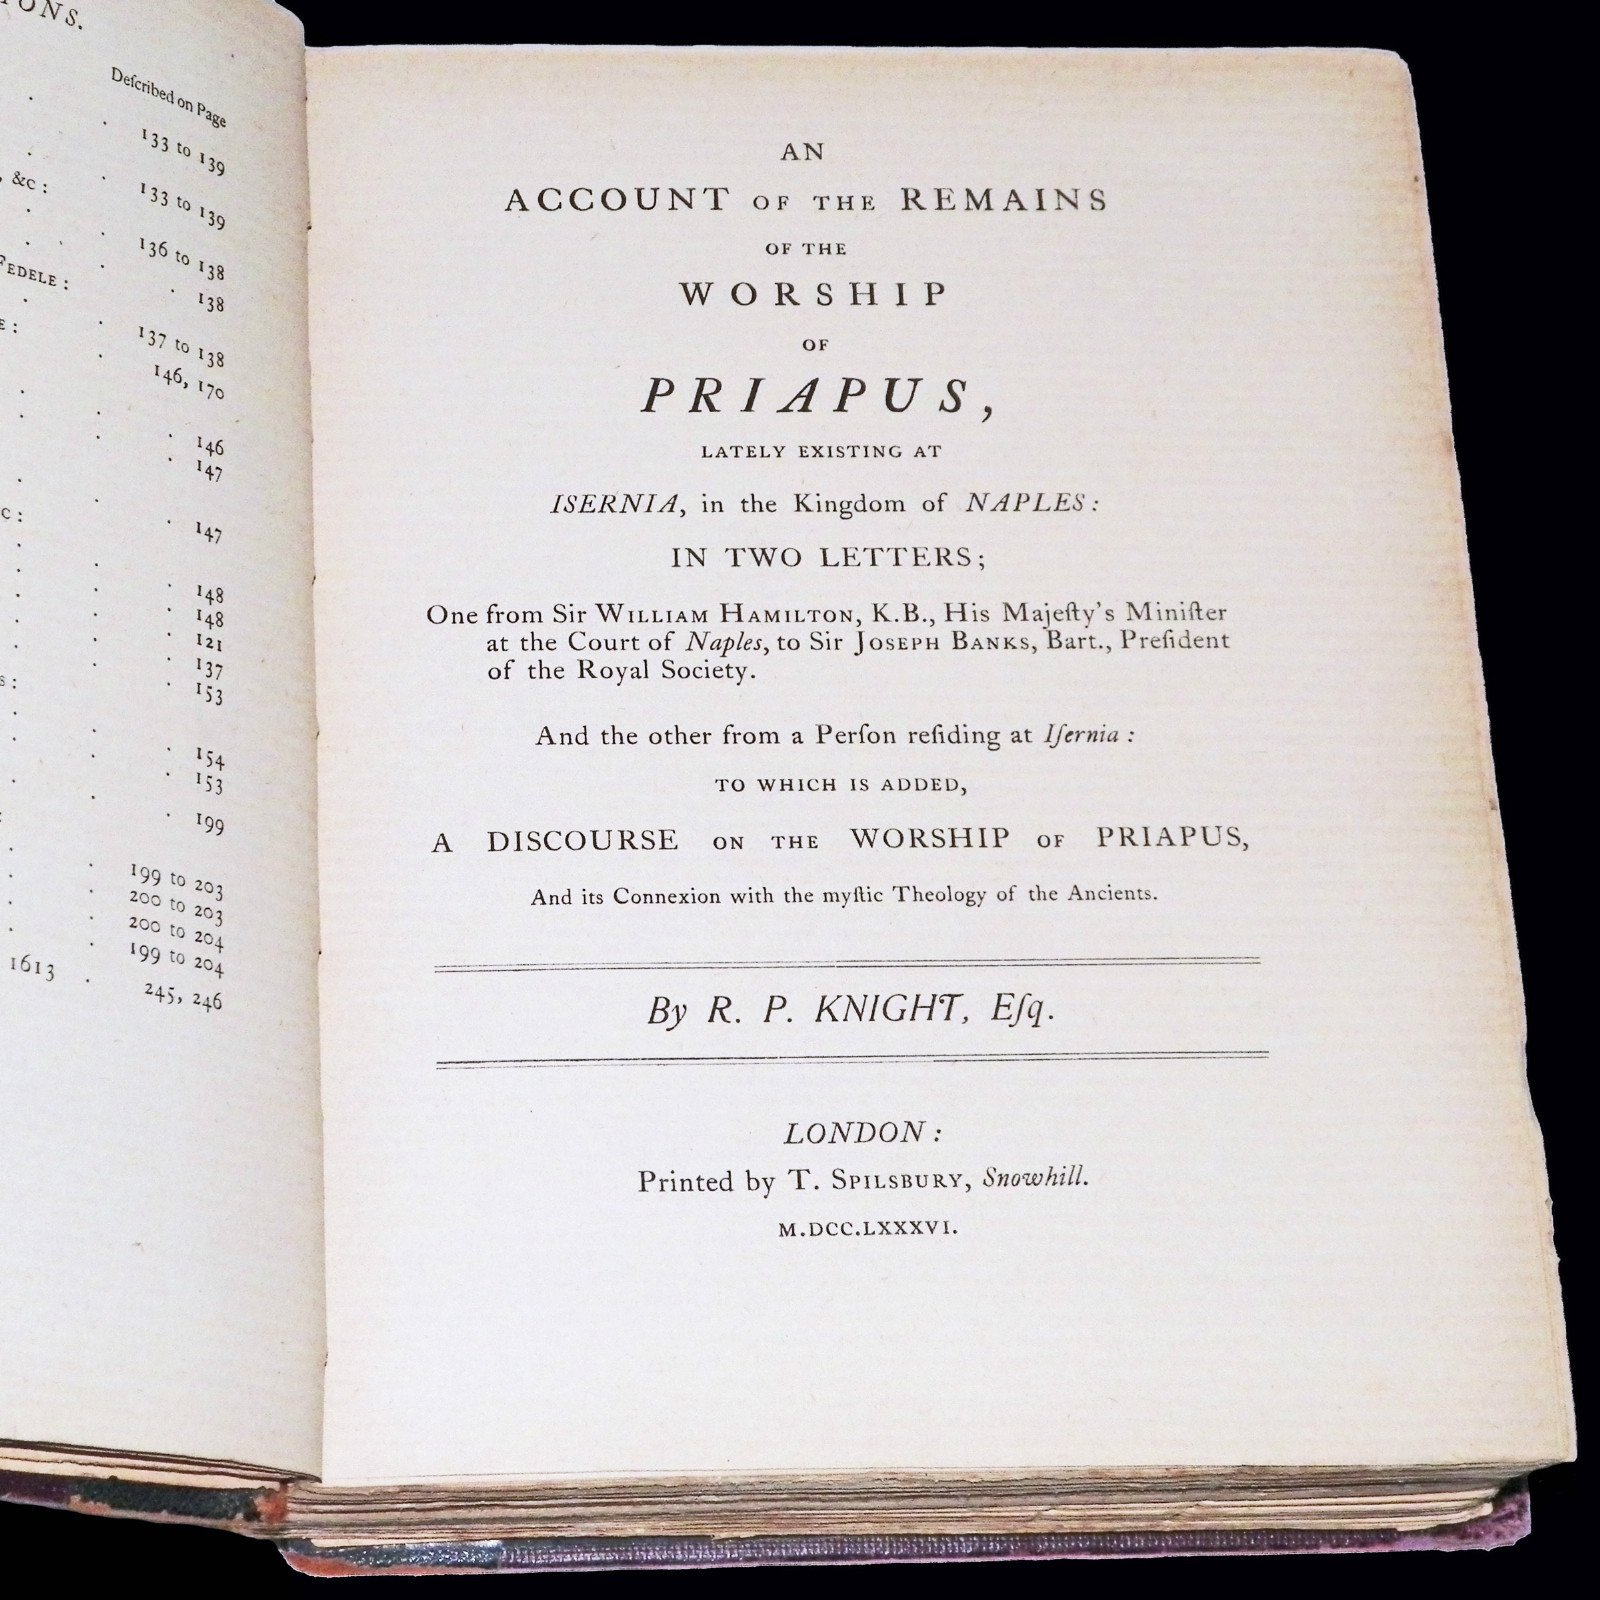 two essays on the worship of priapus This essay suggests that blake's 1809 exhibition was haunted by the memory of   catalogue that visitors to blake's exhibition were offered for two shillings and   richard payne knight, the author of the discourse of the worship of priapus.